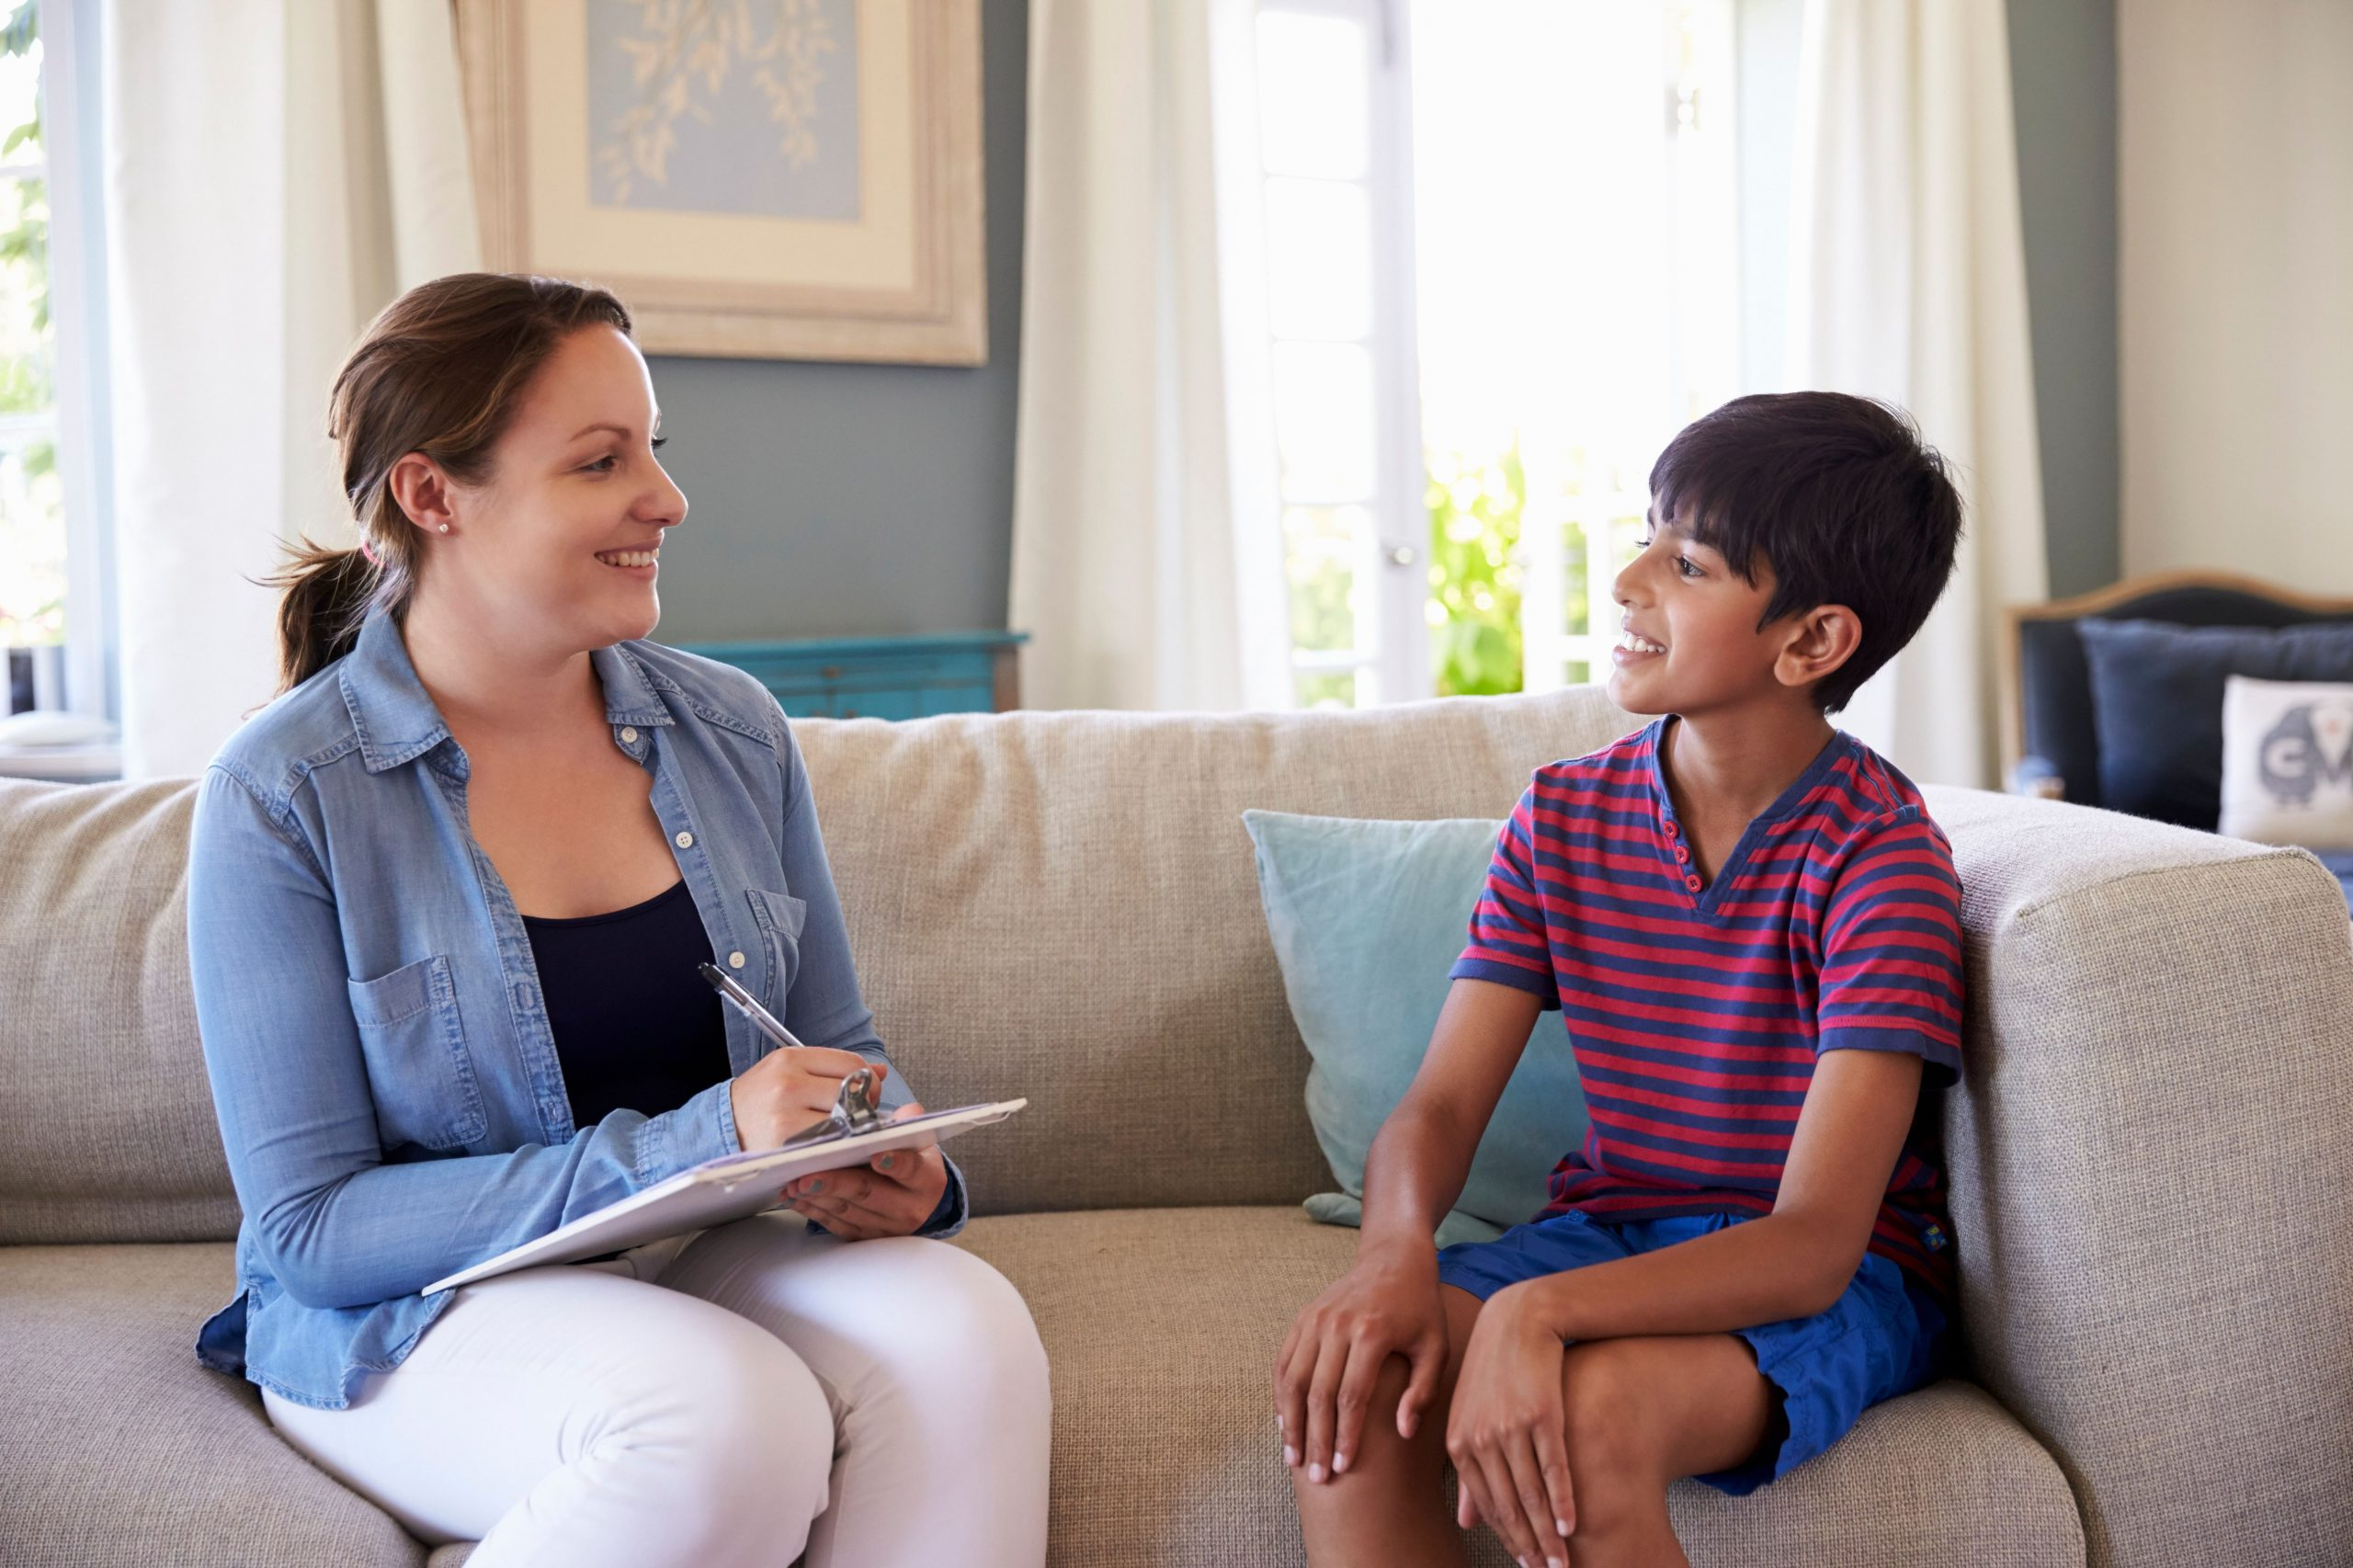 Woman with a clipboard talking to a young boy in a living room